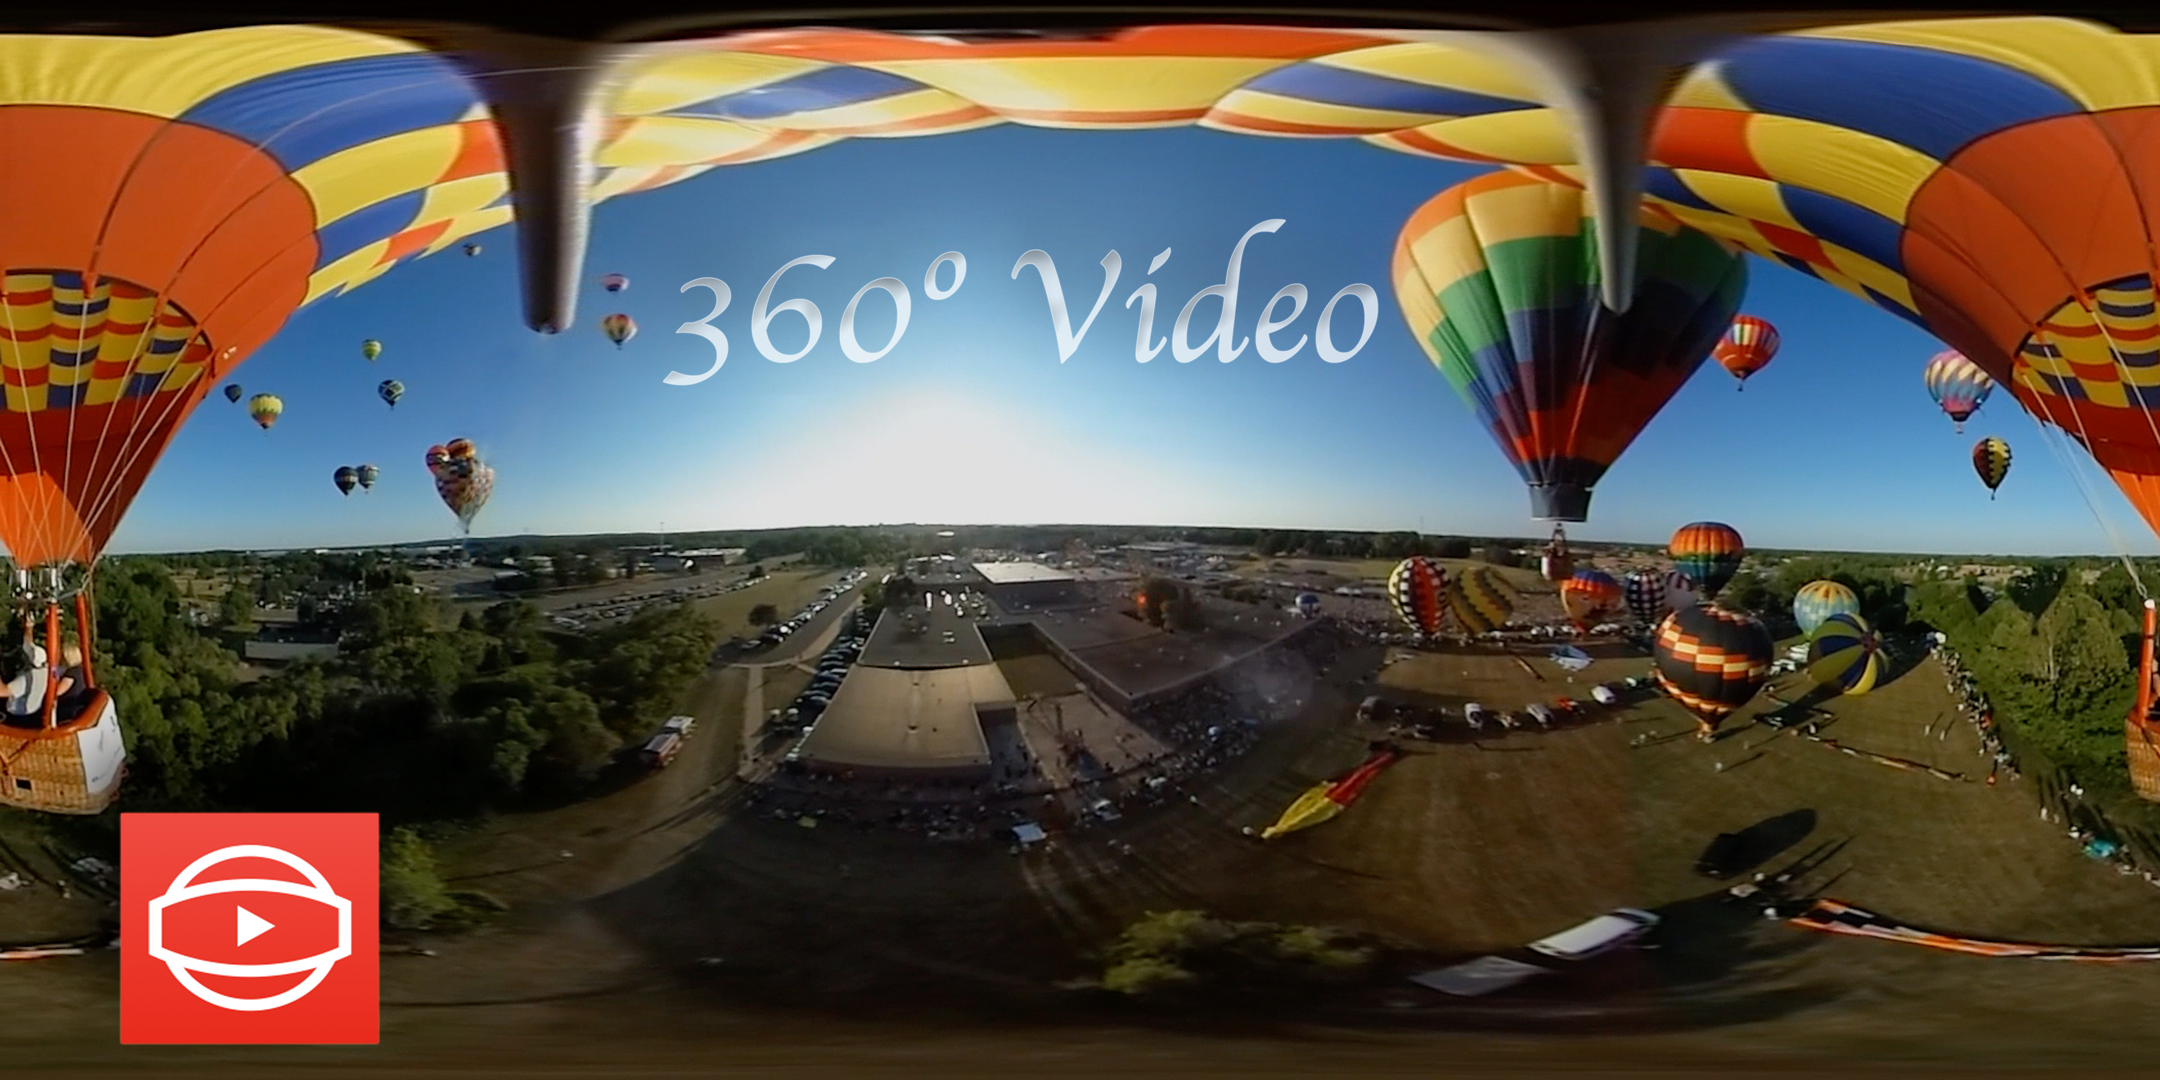 A New 360 VR video has been added to Vimeo